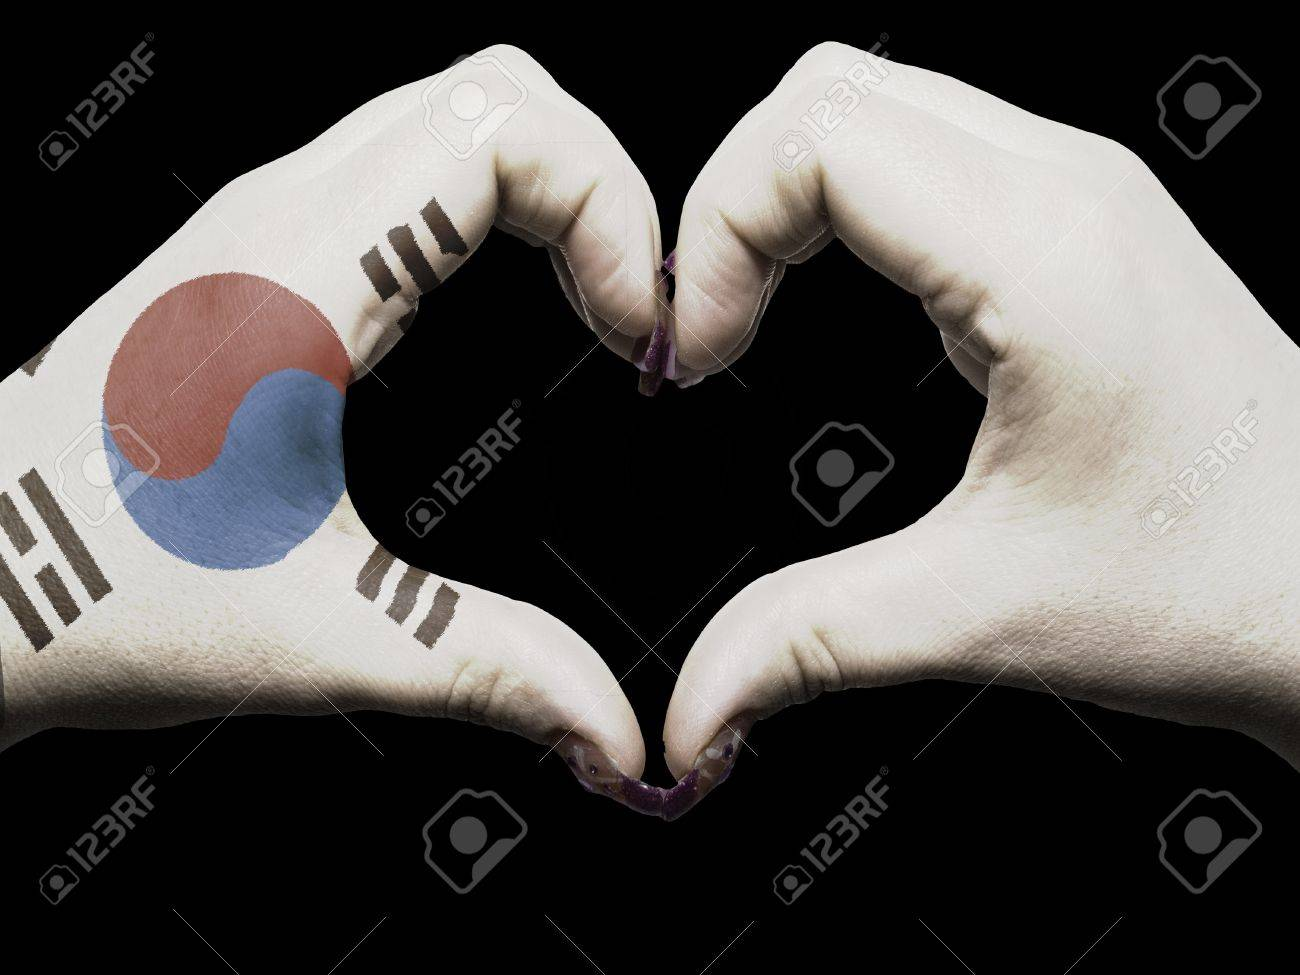 http://previews.123rf.com/images/vepar5/vepar51204/vepar5120400270/12982028-Tourist-made-gesture-by-south-korea-flag-colored-hands-showing-symbol-of-heart-and-love--Stock-Photo.jpg